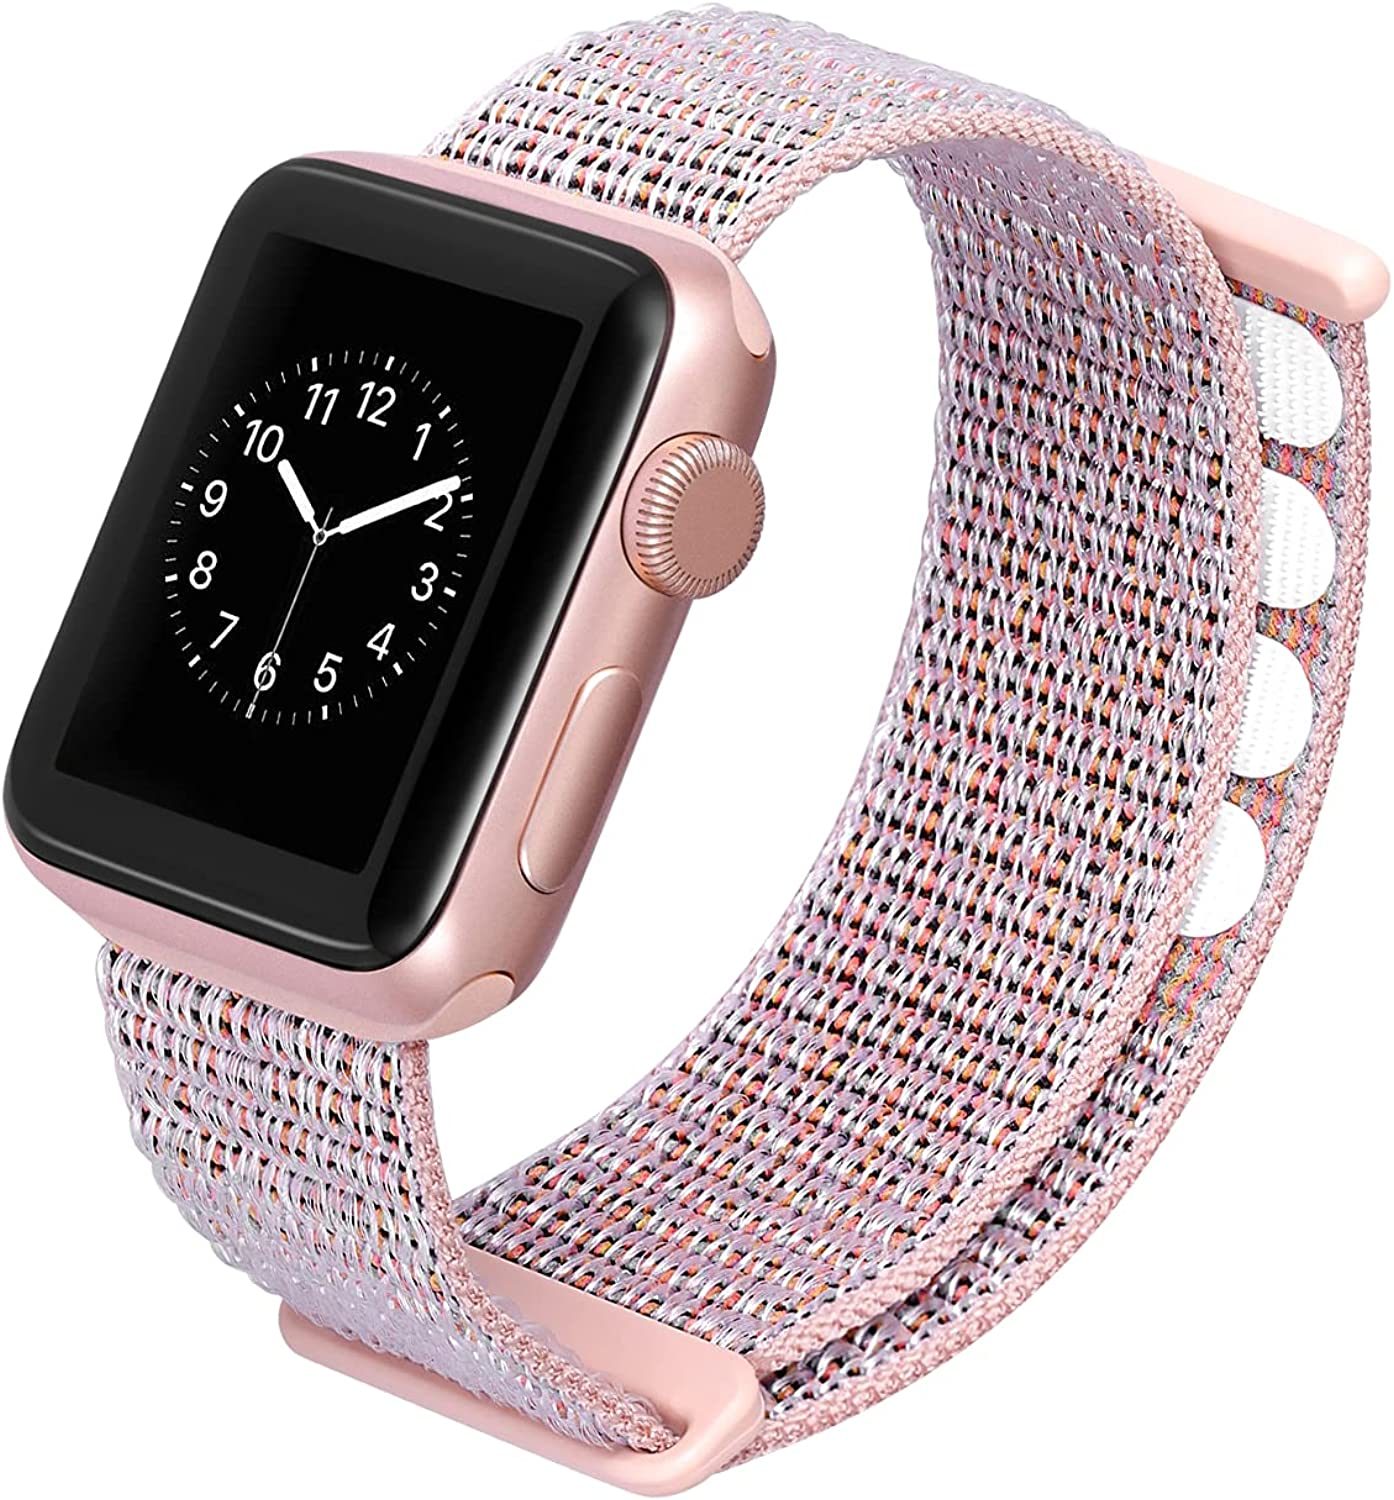 Blueauty Sport Loop Stretchy Strap Compatible with Apple Watch Bands 38mm 40mm 42mm 44mm,Nylon Braided Adjustable Replacement Wristbands for Women Men for iwatch Series SE 6 5 4 3 2 1